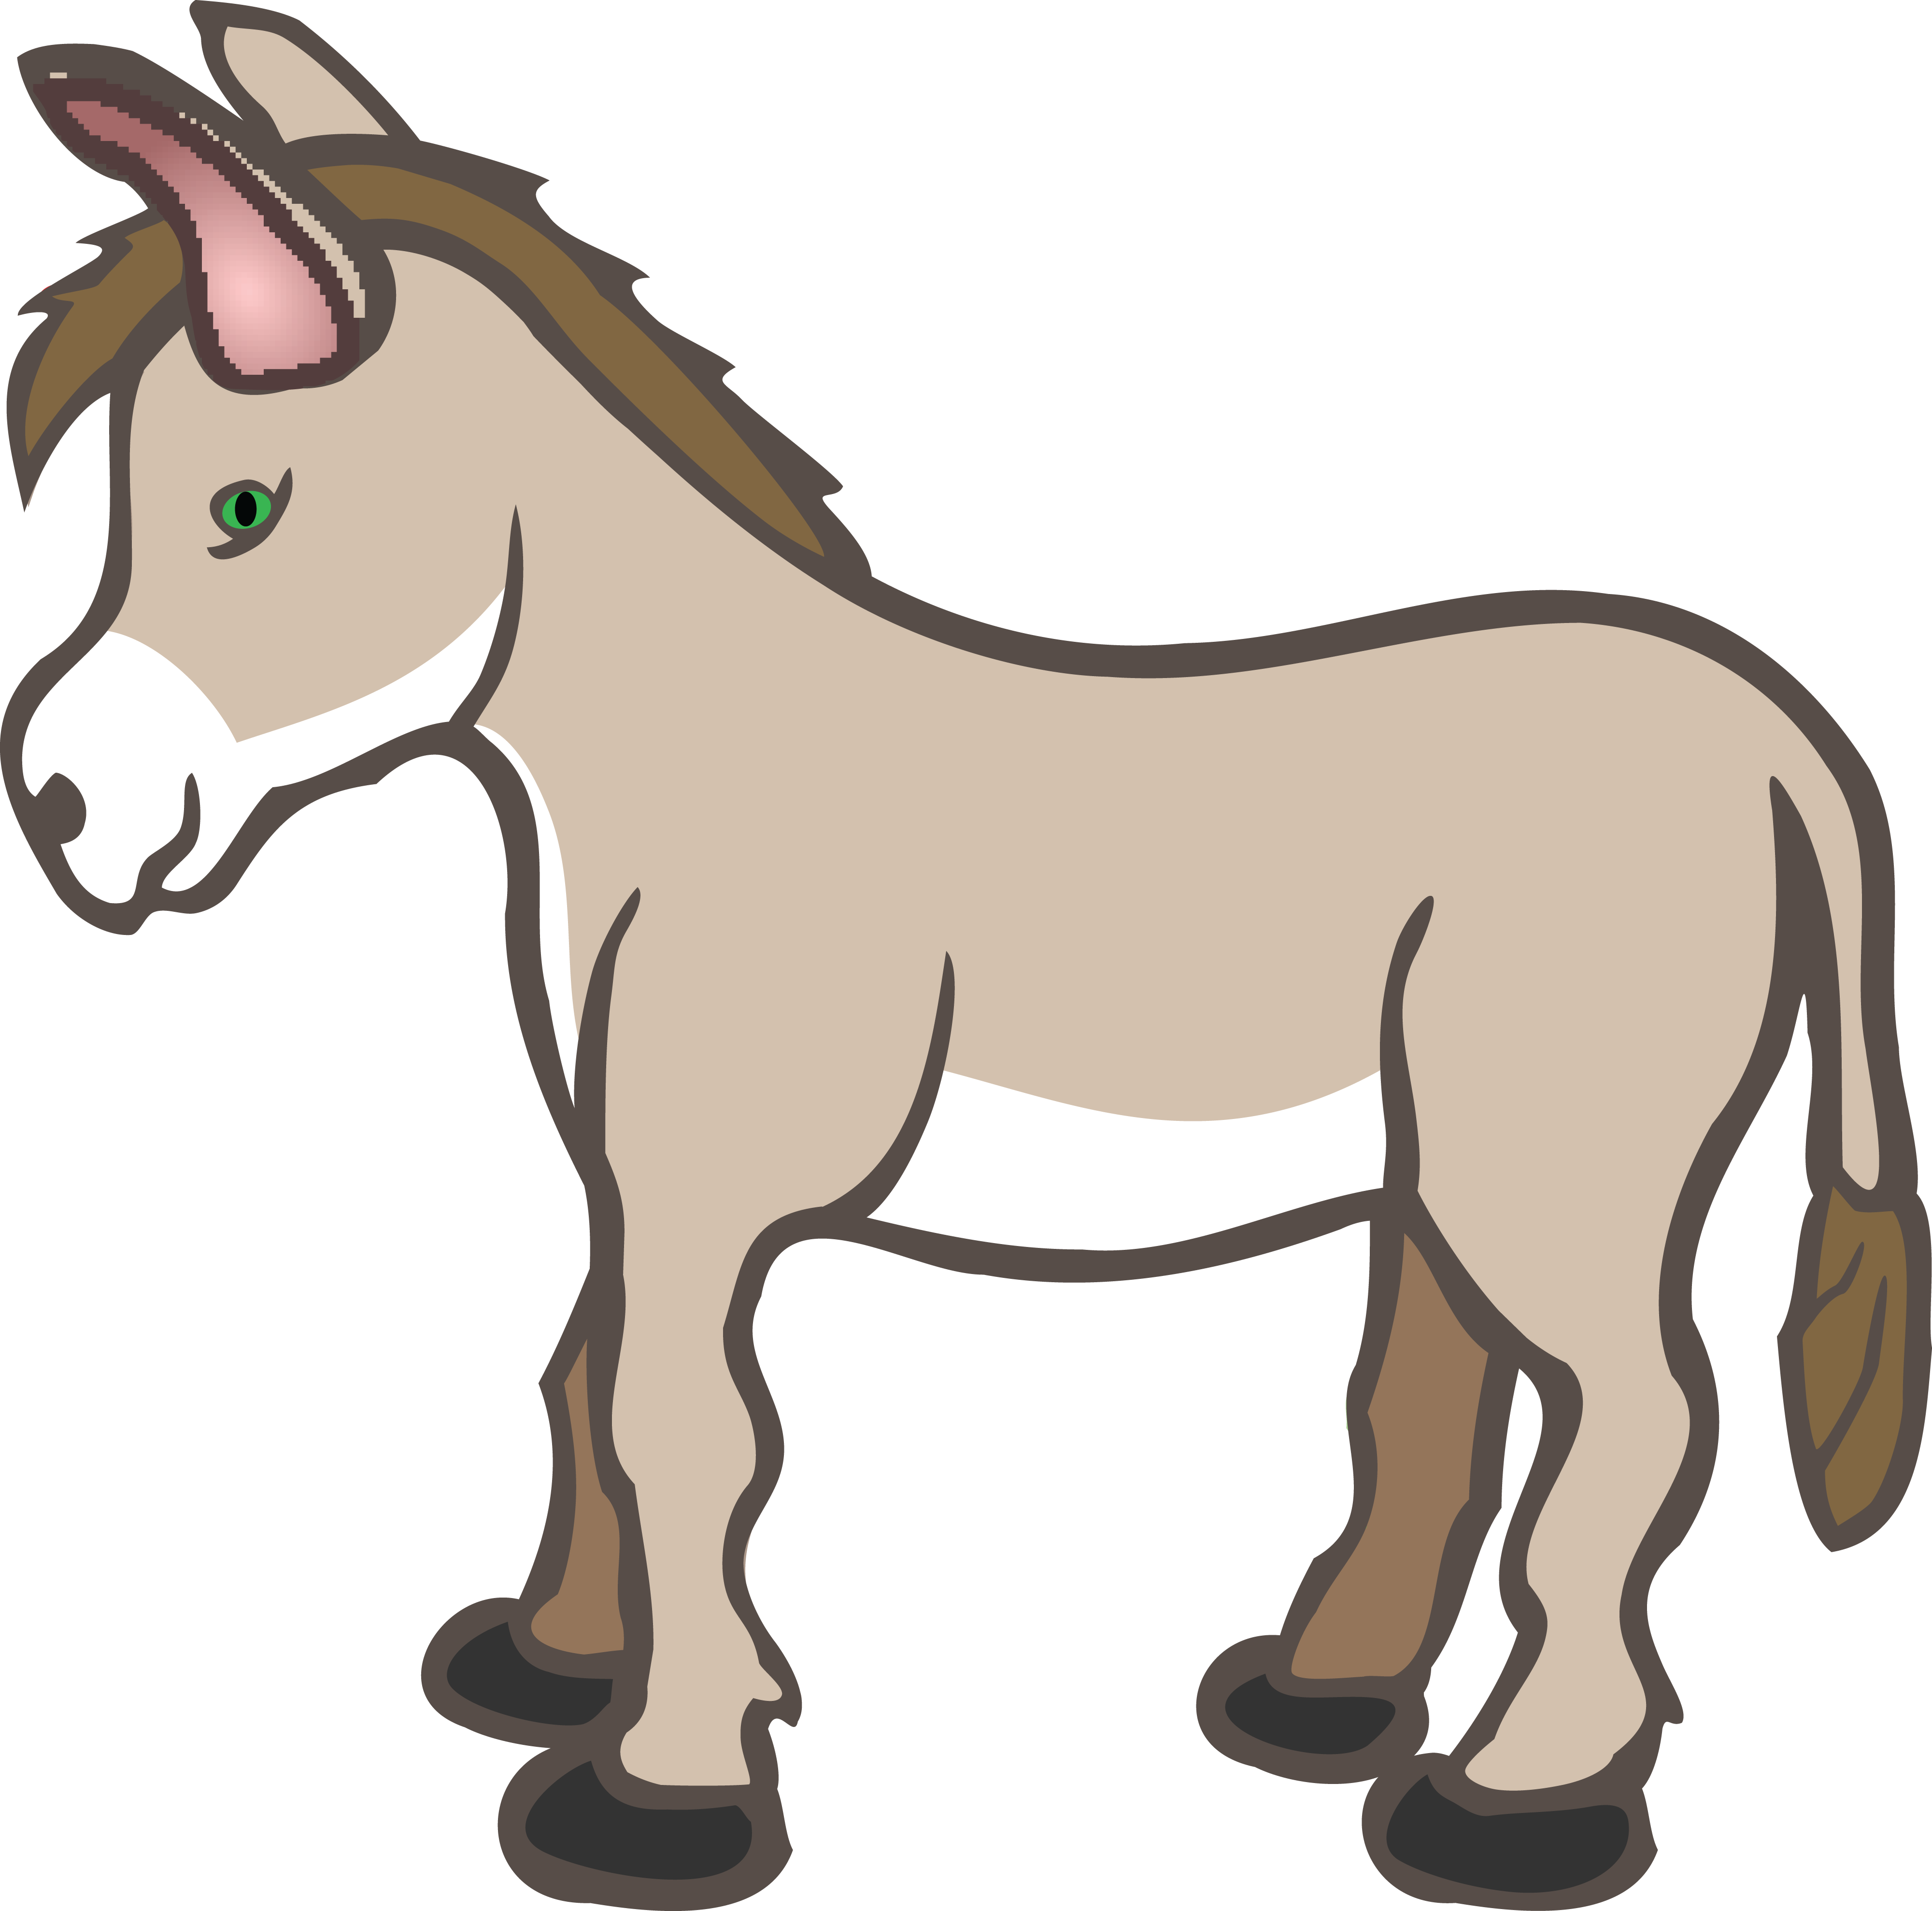 Clipart Of A Donkey.